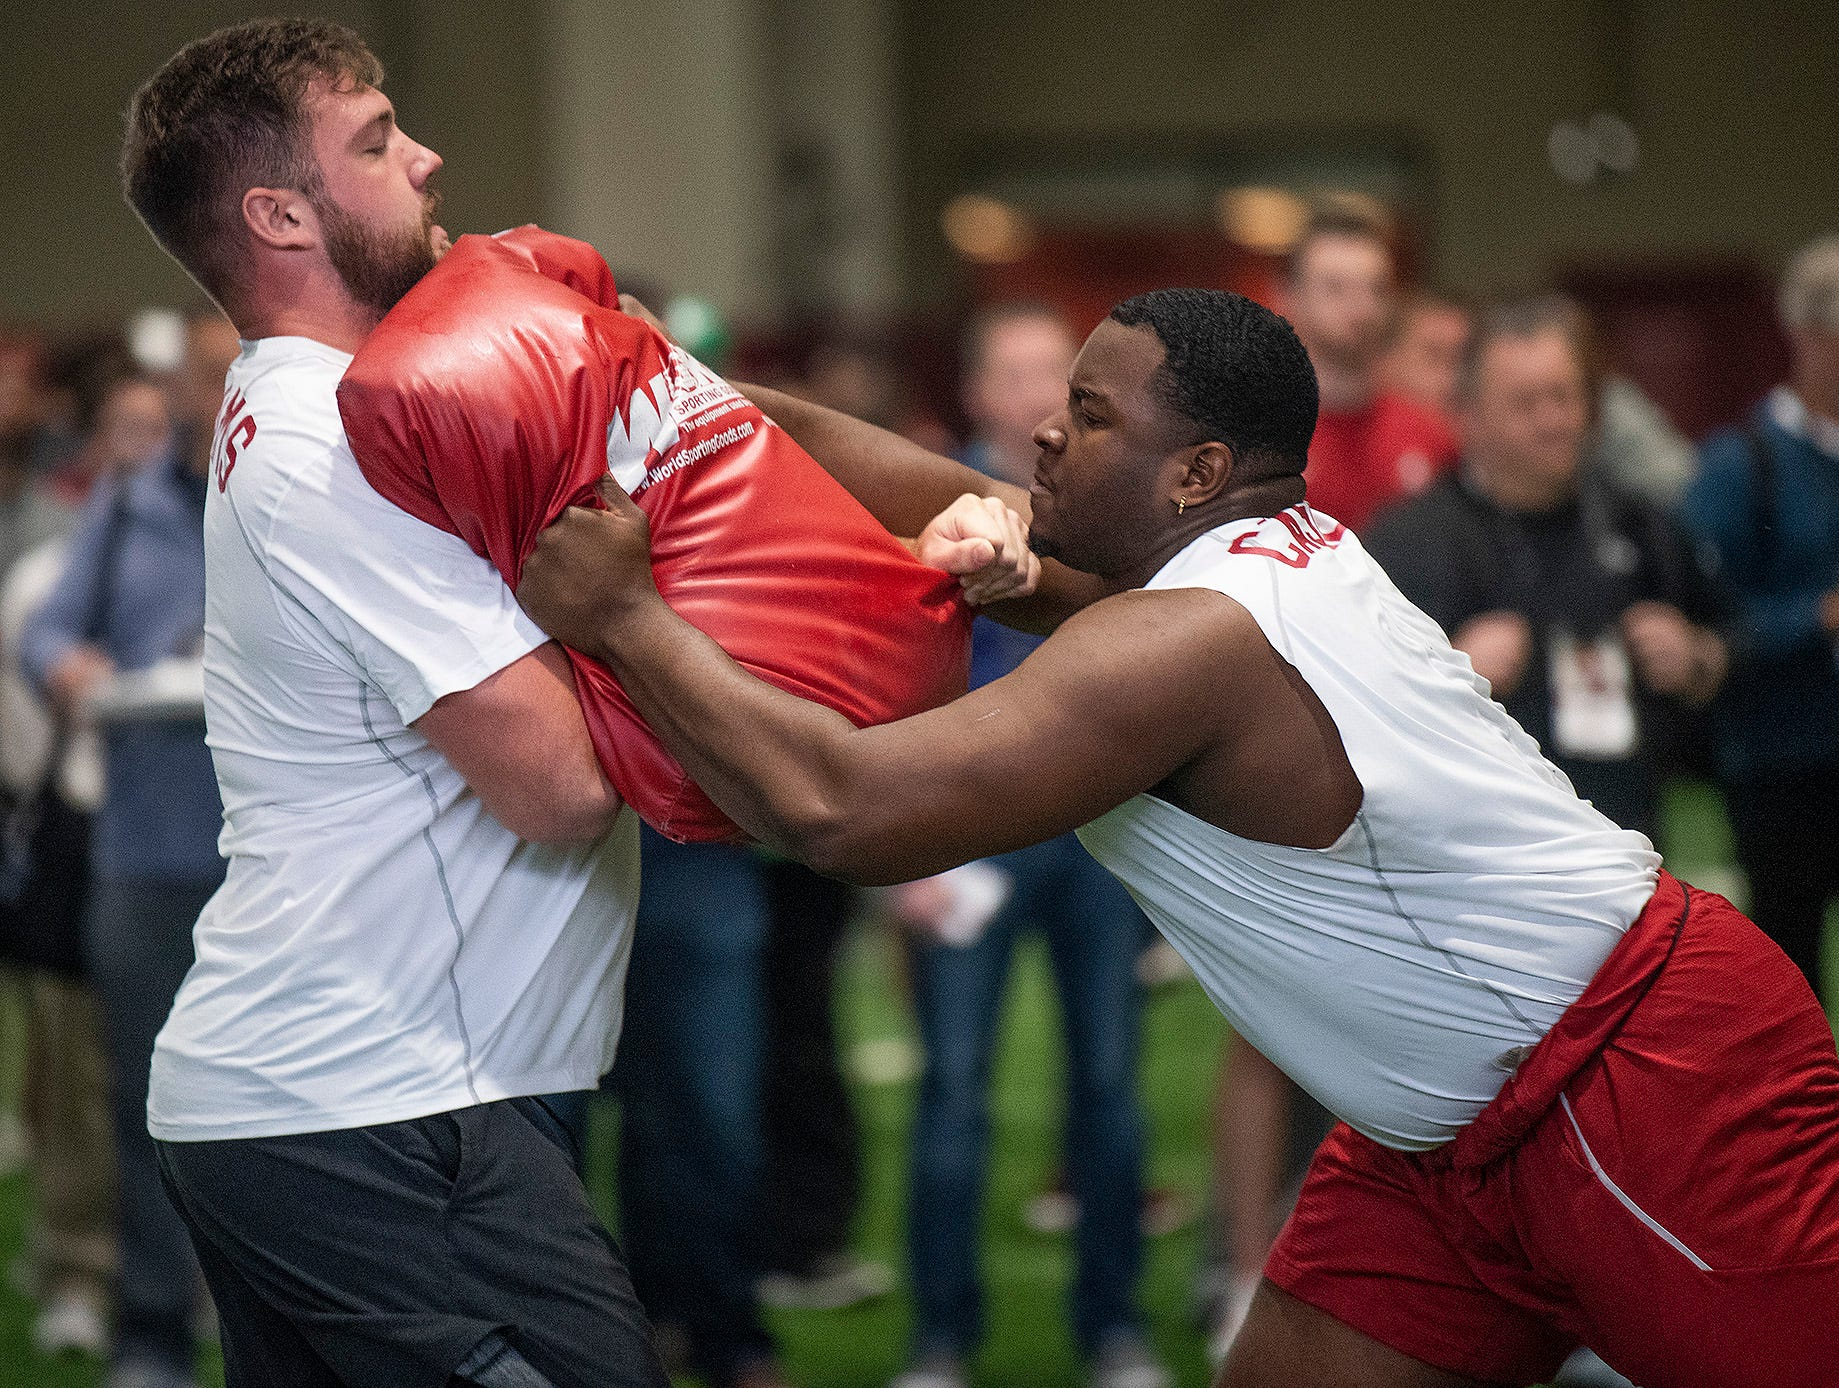 Alabama offensive lineman Jonah Williams and offensive lineman Josh Casher run drills during Pro Day on the University of Alabama campus in Tuscaloosa, Ala., on Tuesday March 19, 2019.